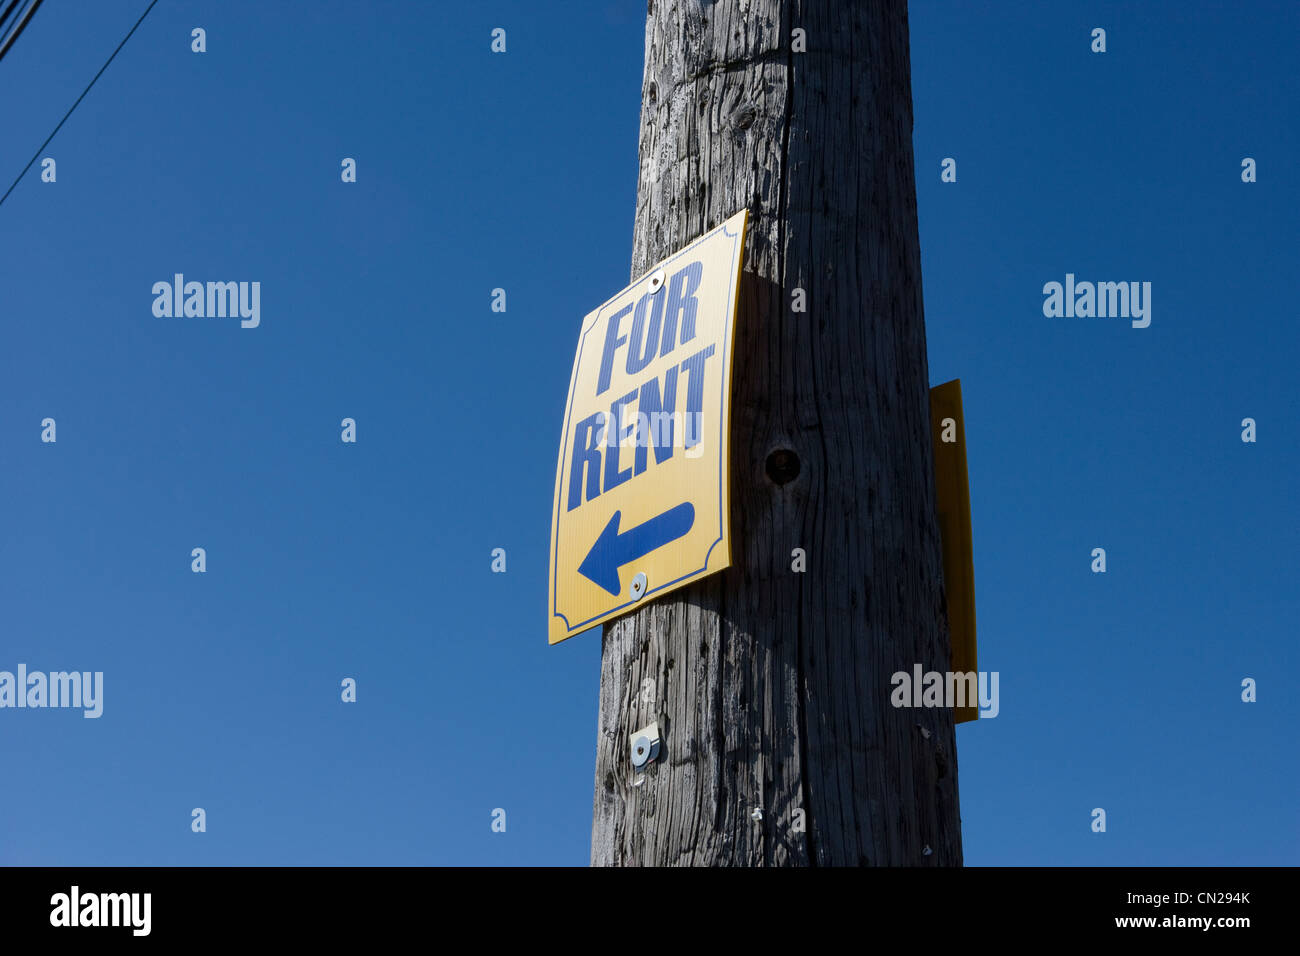 For rent sign on wooden post - Stock Image